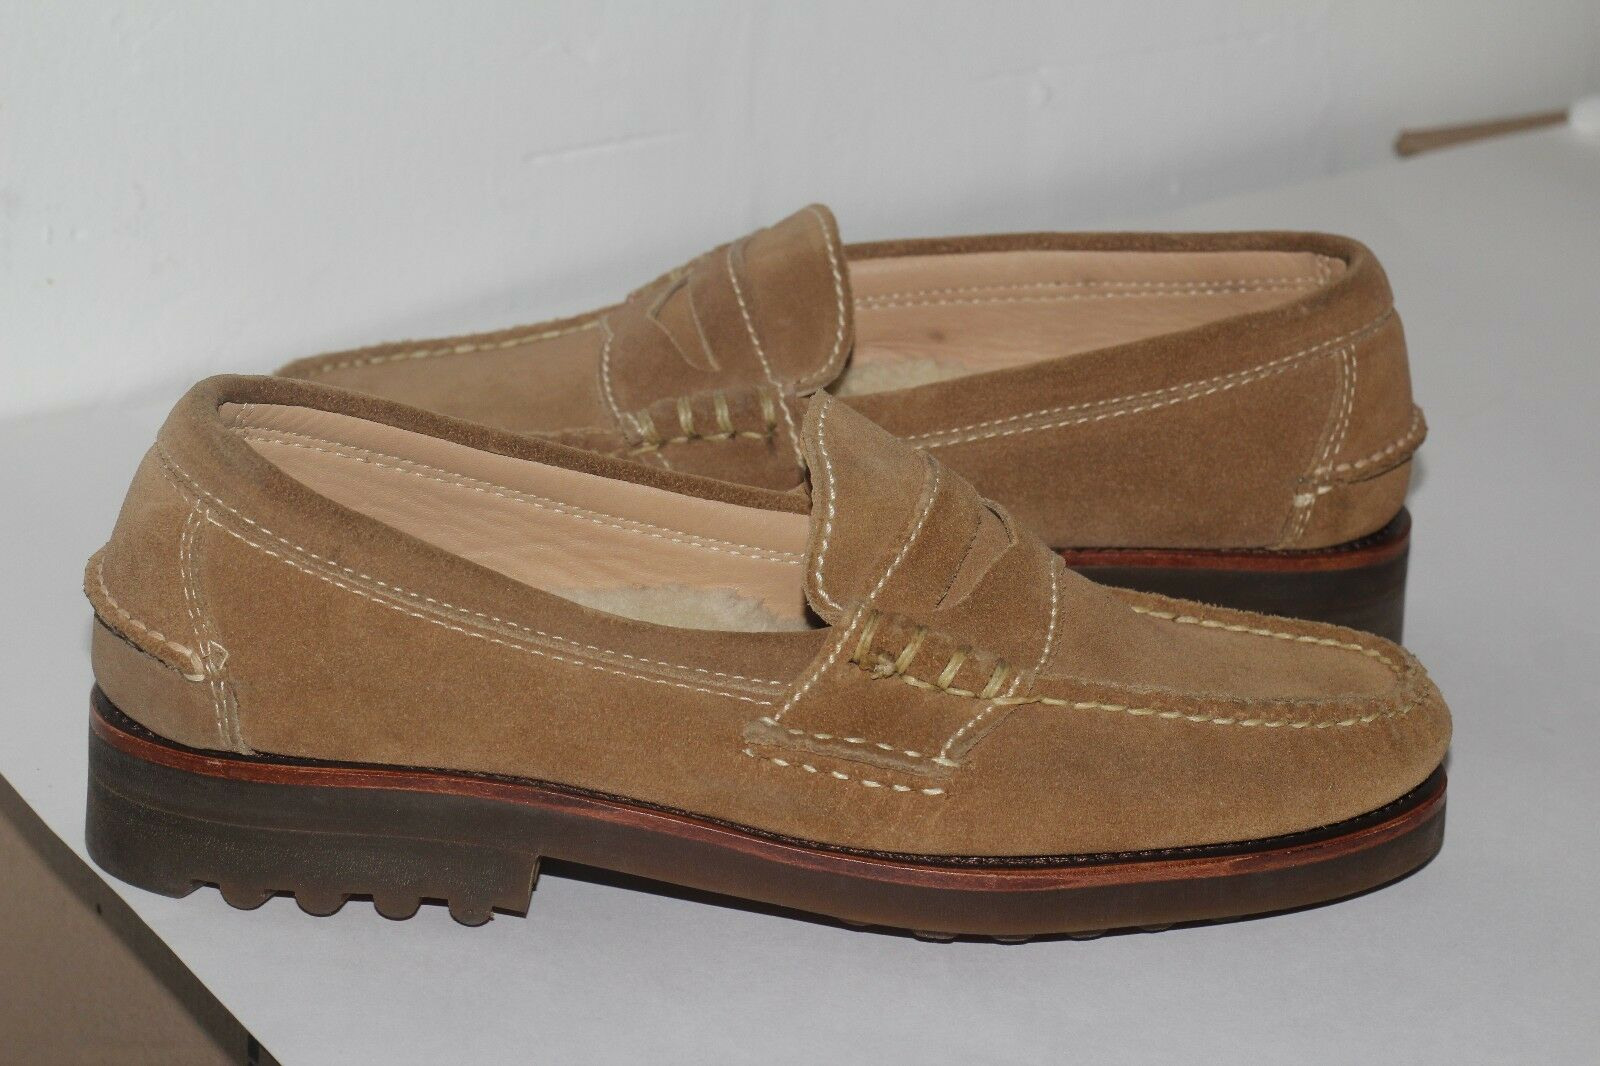 Polo Ralph Lauren Uomo Leather Shearling Fur suede suede suede Loafers sz 9 made in Usa bcbf0e